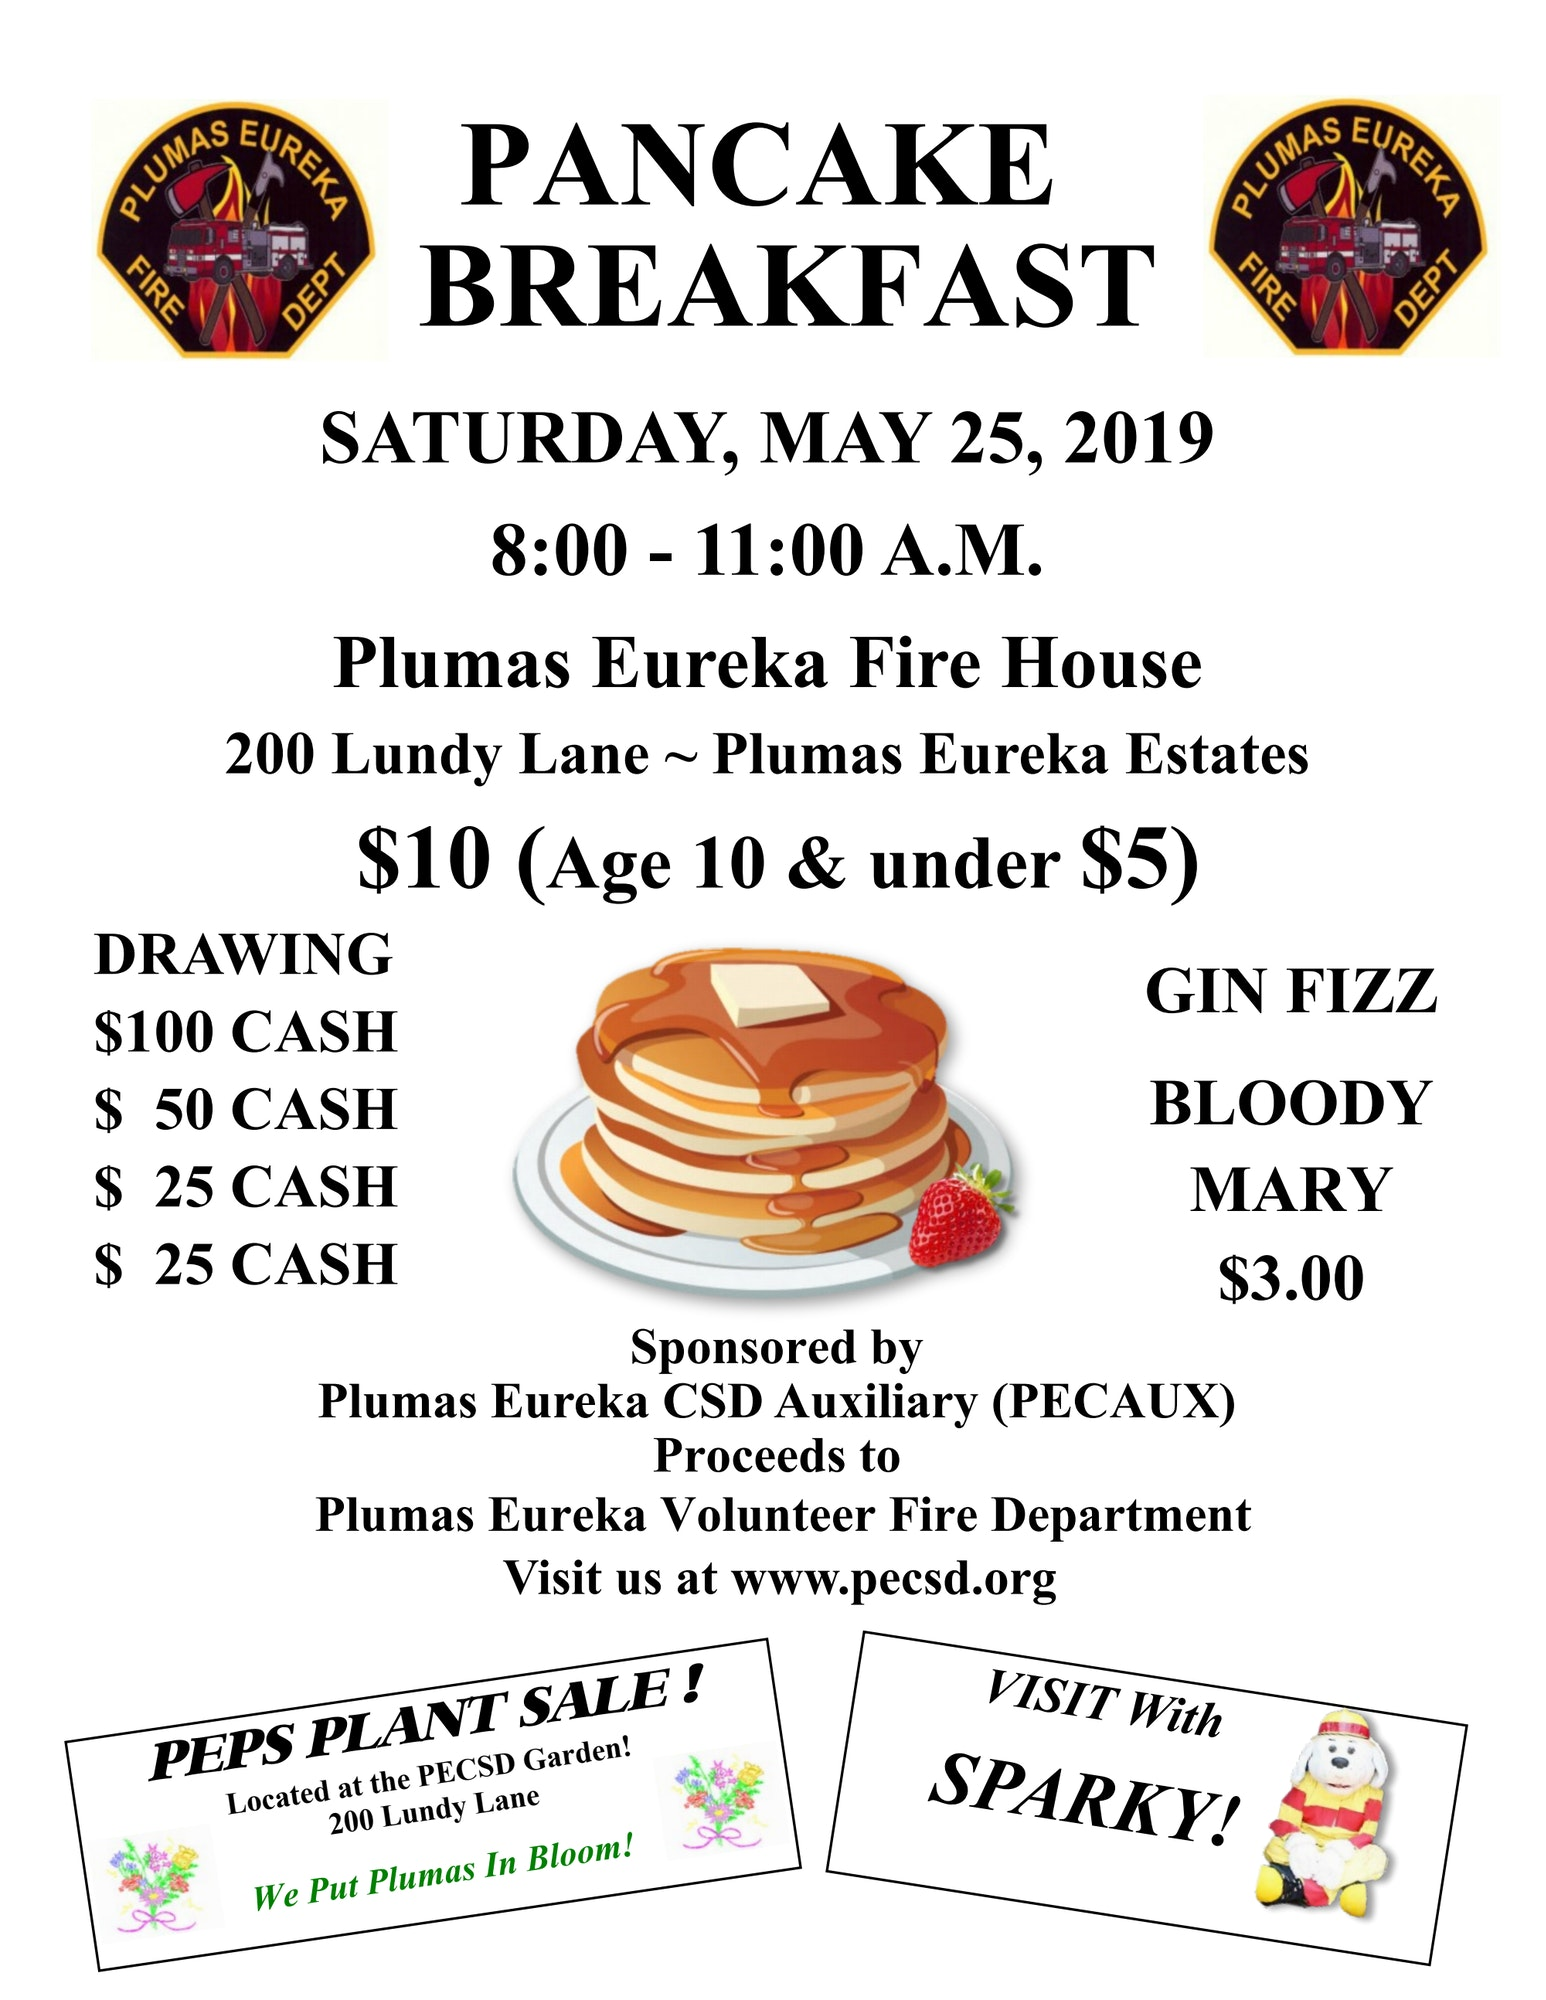 Pancake Breakfast. Saturday May 25, 2019 Plumas Eureka Fire House 200 Lundy Lane - Plumas Eureka Estates. $10.00 Adults $5 Ages 10 and under. VISIT With SPARKY! Raffle Drawing, Prizes: $100.00 cash, $50.00 cash, $25.00 cash, $25.00 cash. Gin Fizz or Bloody Mary $3.00. Sponsored by Plumas Eureka CSD Auxiliary (PECAUX). Proceeds to Plumas Eureka Volunteer Fire Department visit us a www.pecsd.org. Plant Sale Located at the PECSD Garden! 200 Lundy Lane We Put Plumas In Bloom